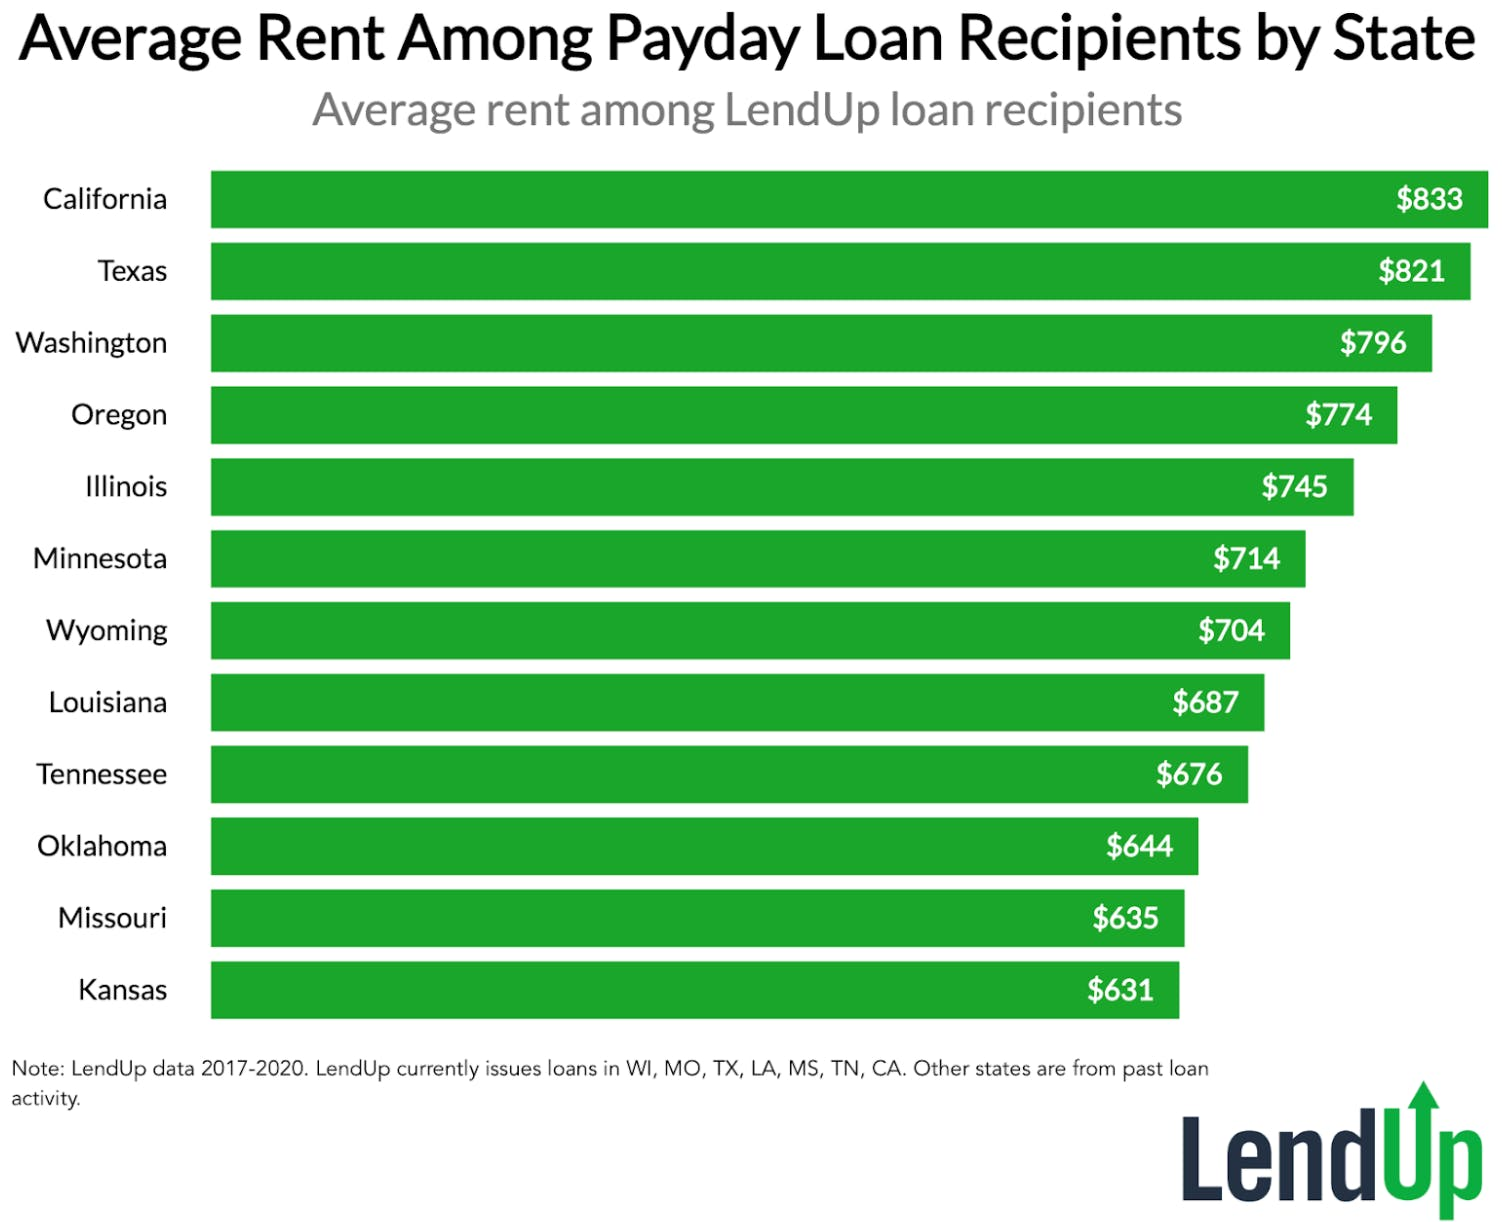 Average Rent Among Payday Loan Recipients by State